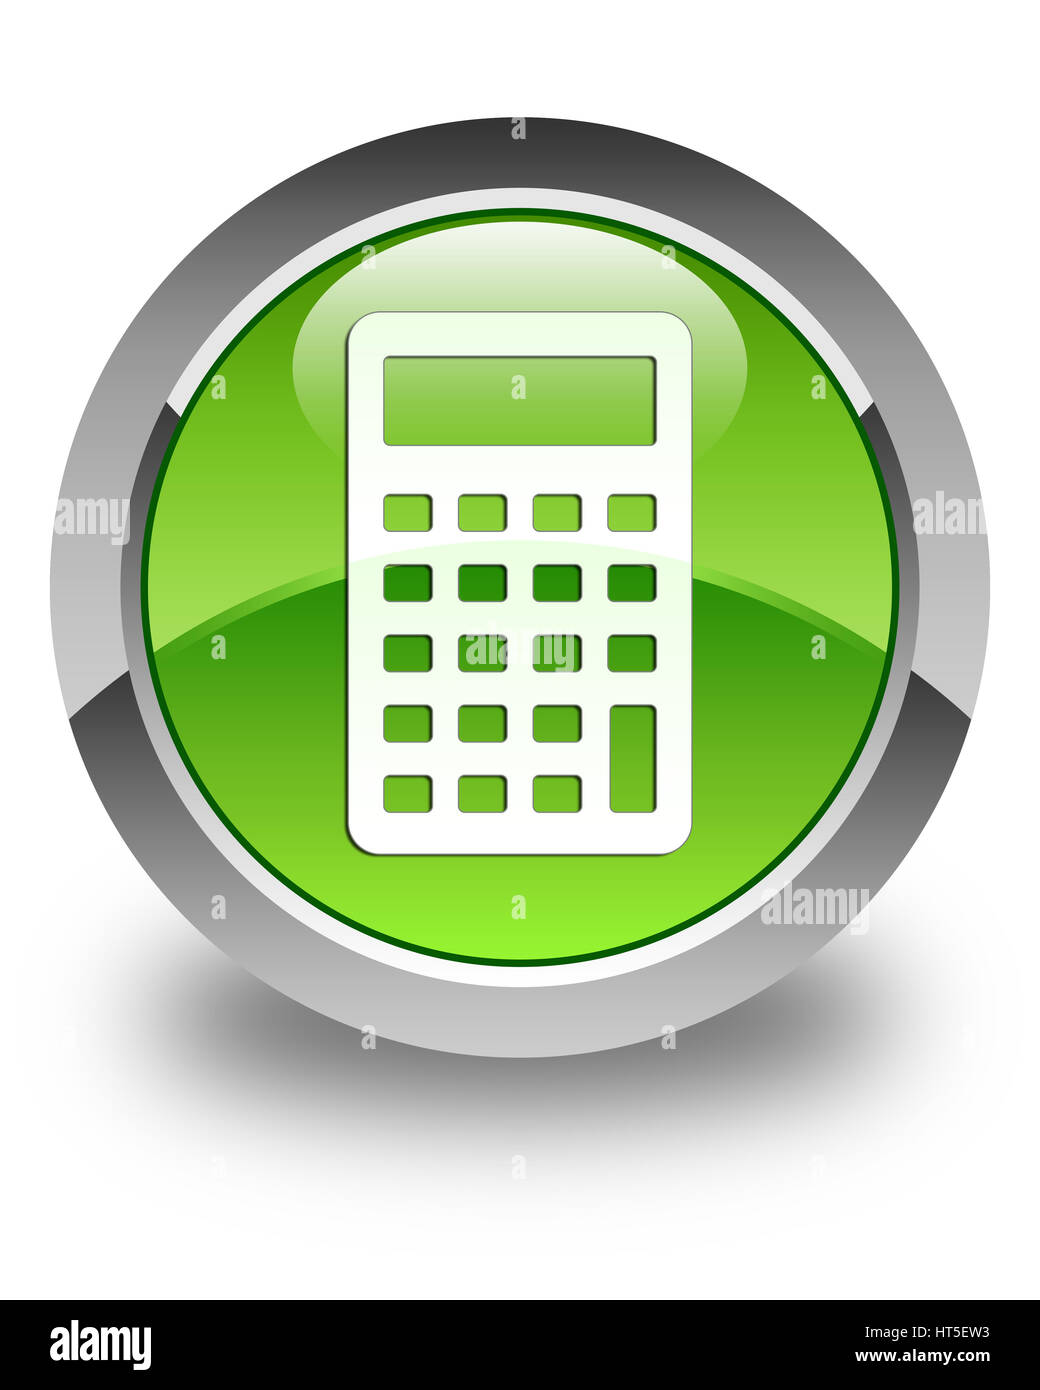 Calculator icon isolated on glossy green round button abstract illustration Stock Photo